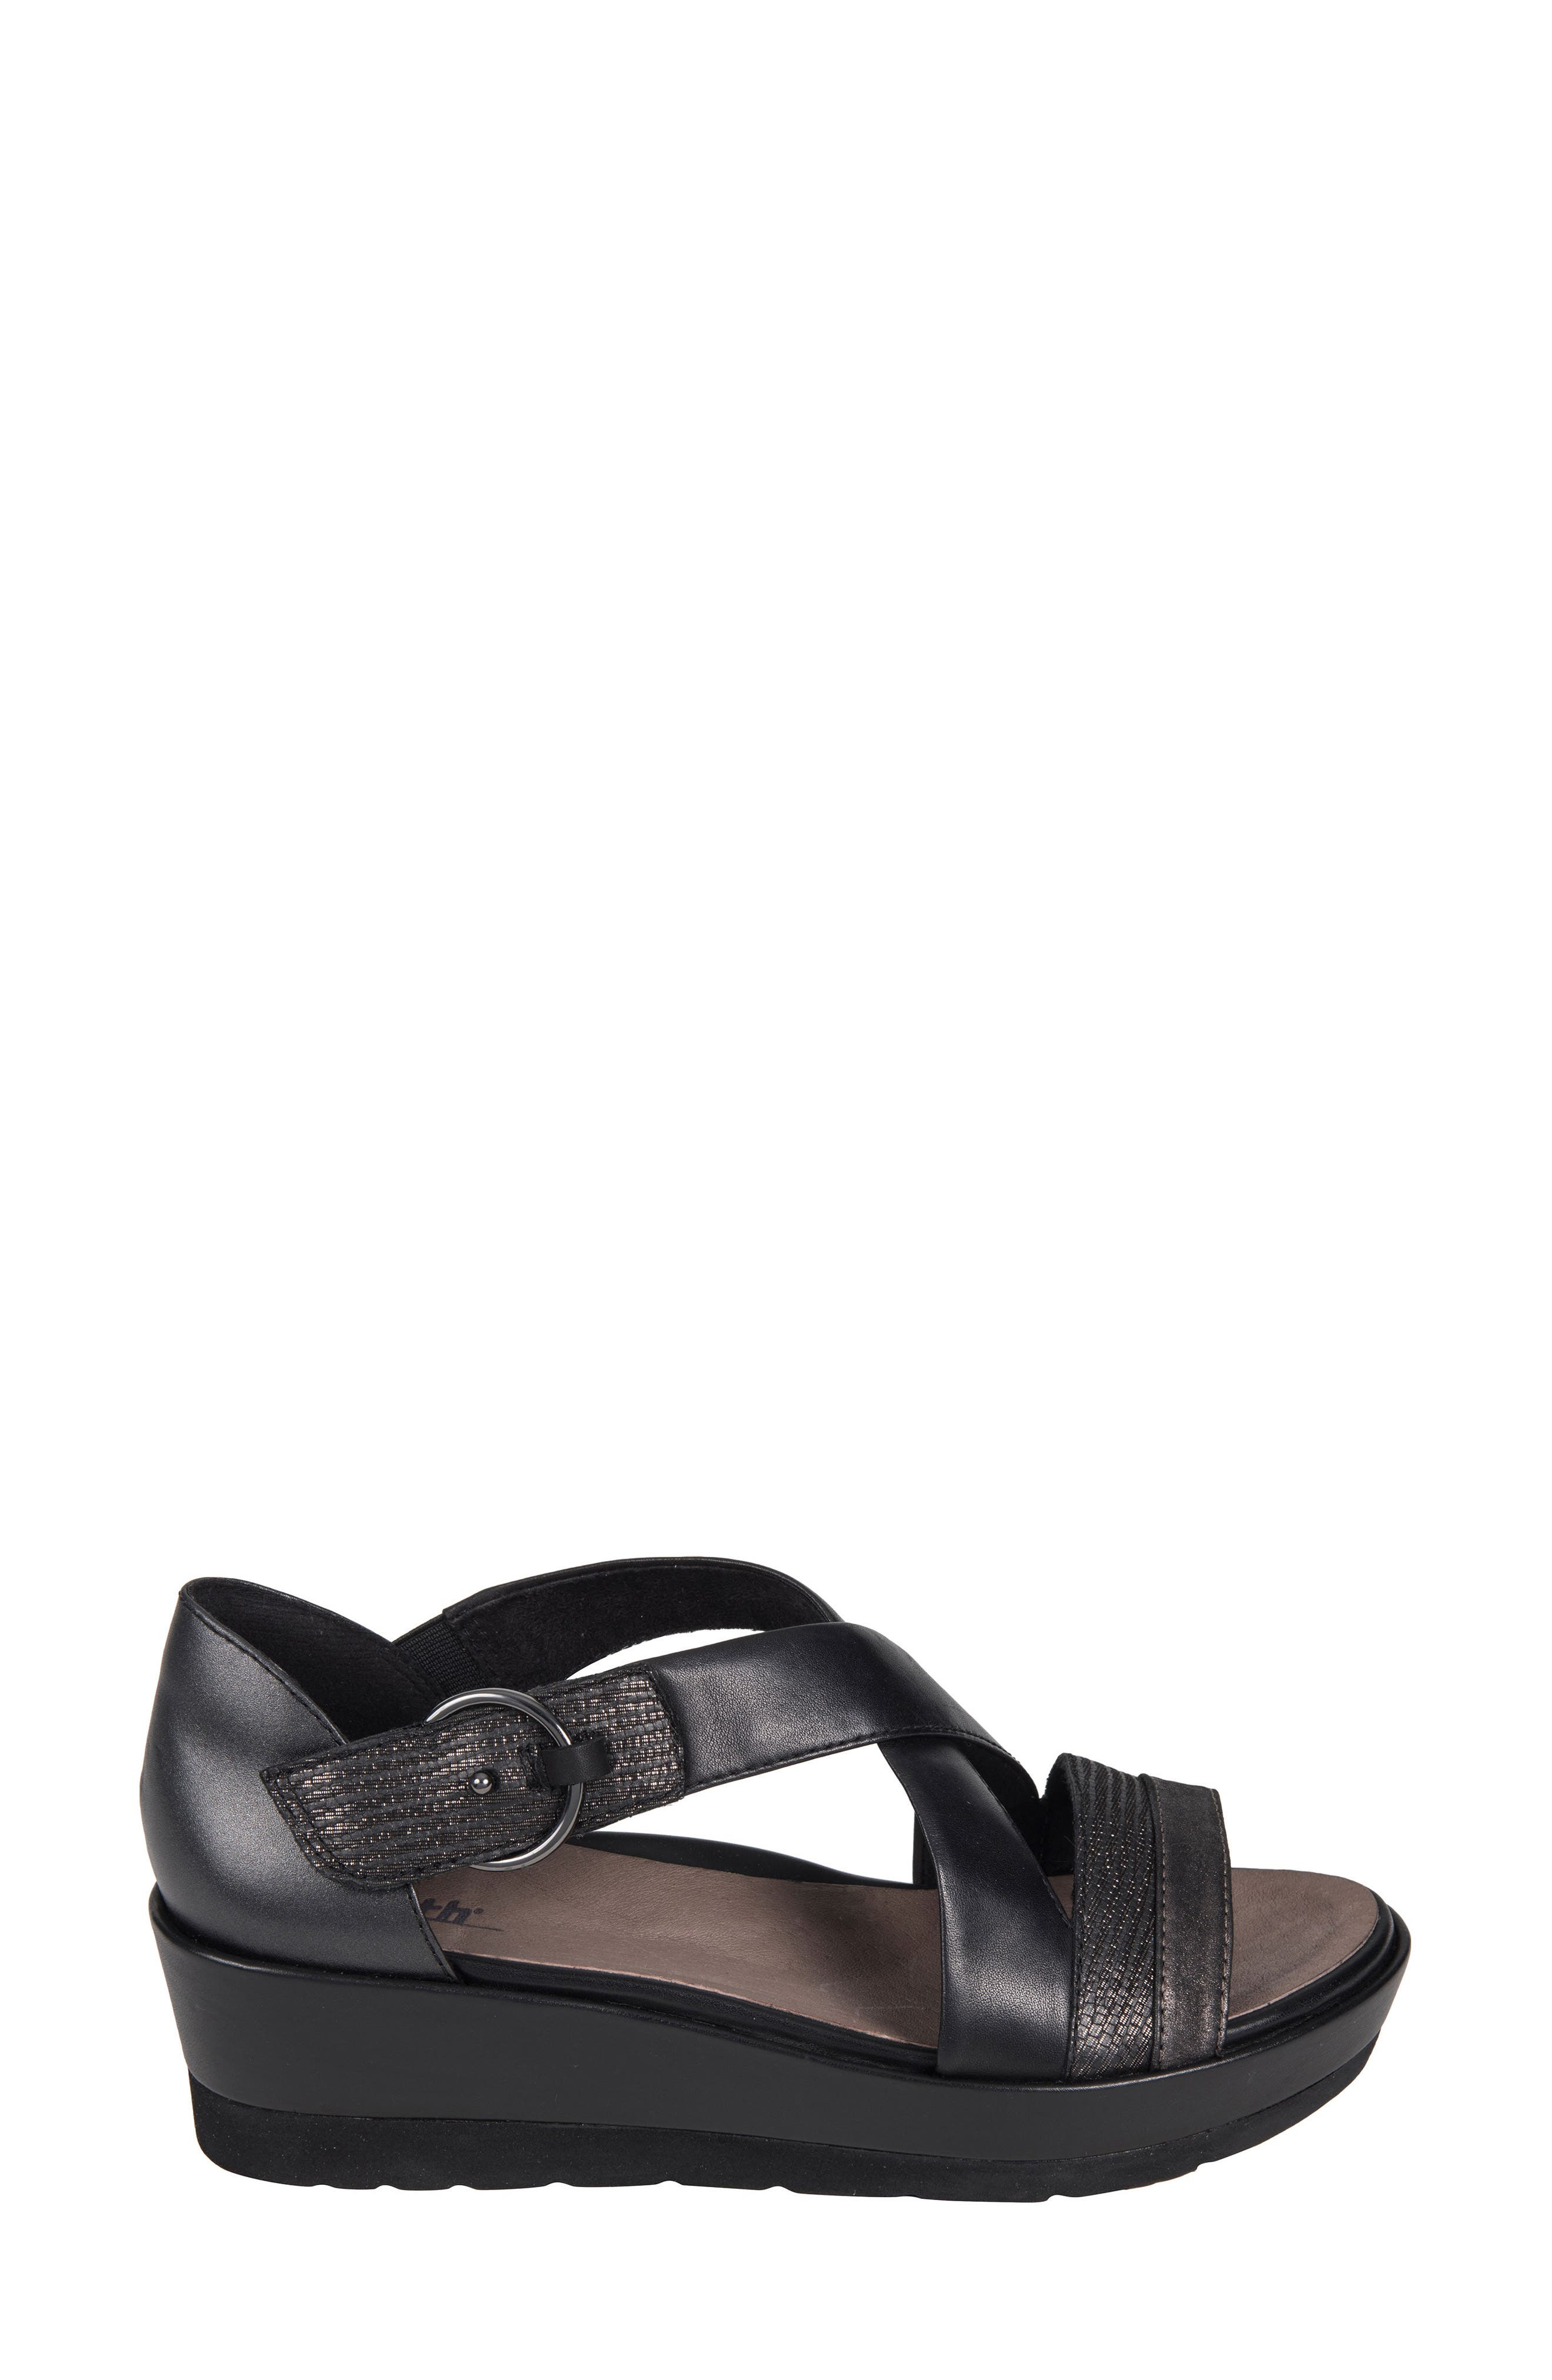 Hibiscus Sandal,                             Alternate thumbnail 3, color,                             BLACK LEATHER